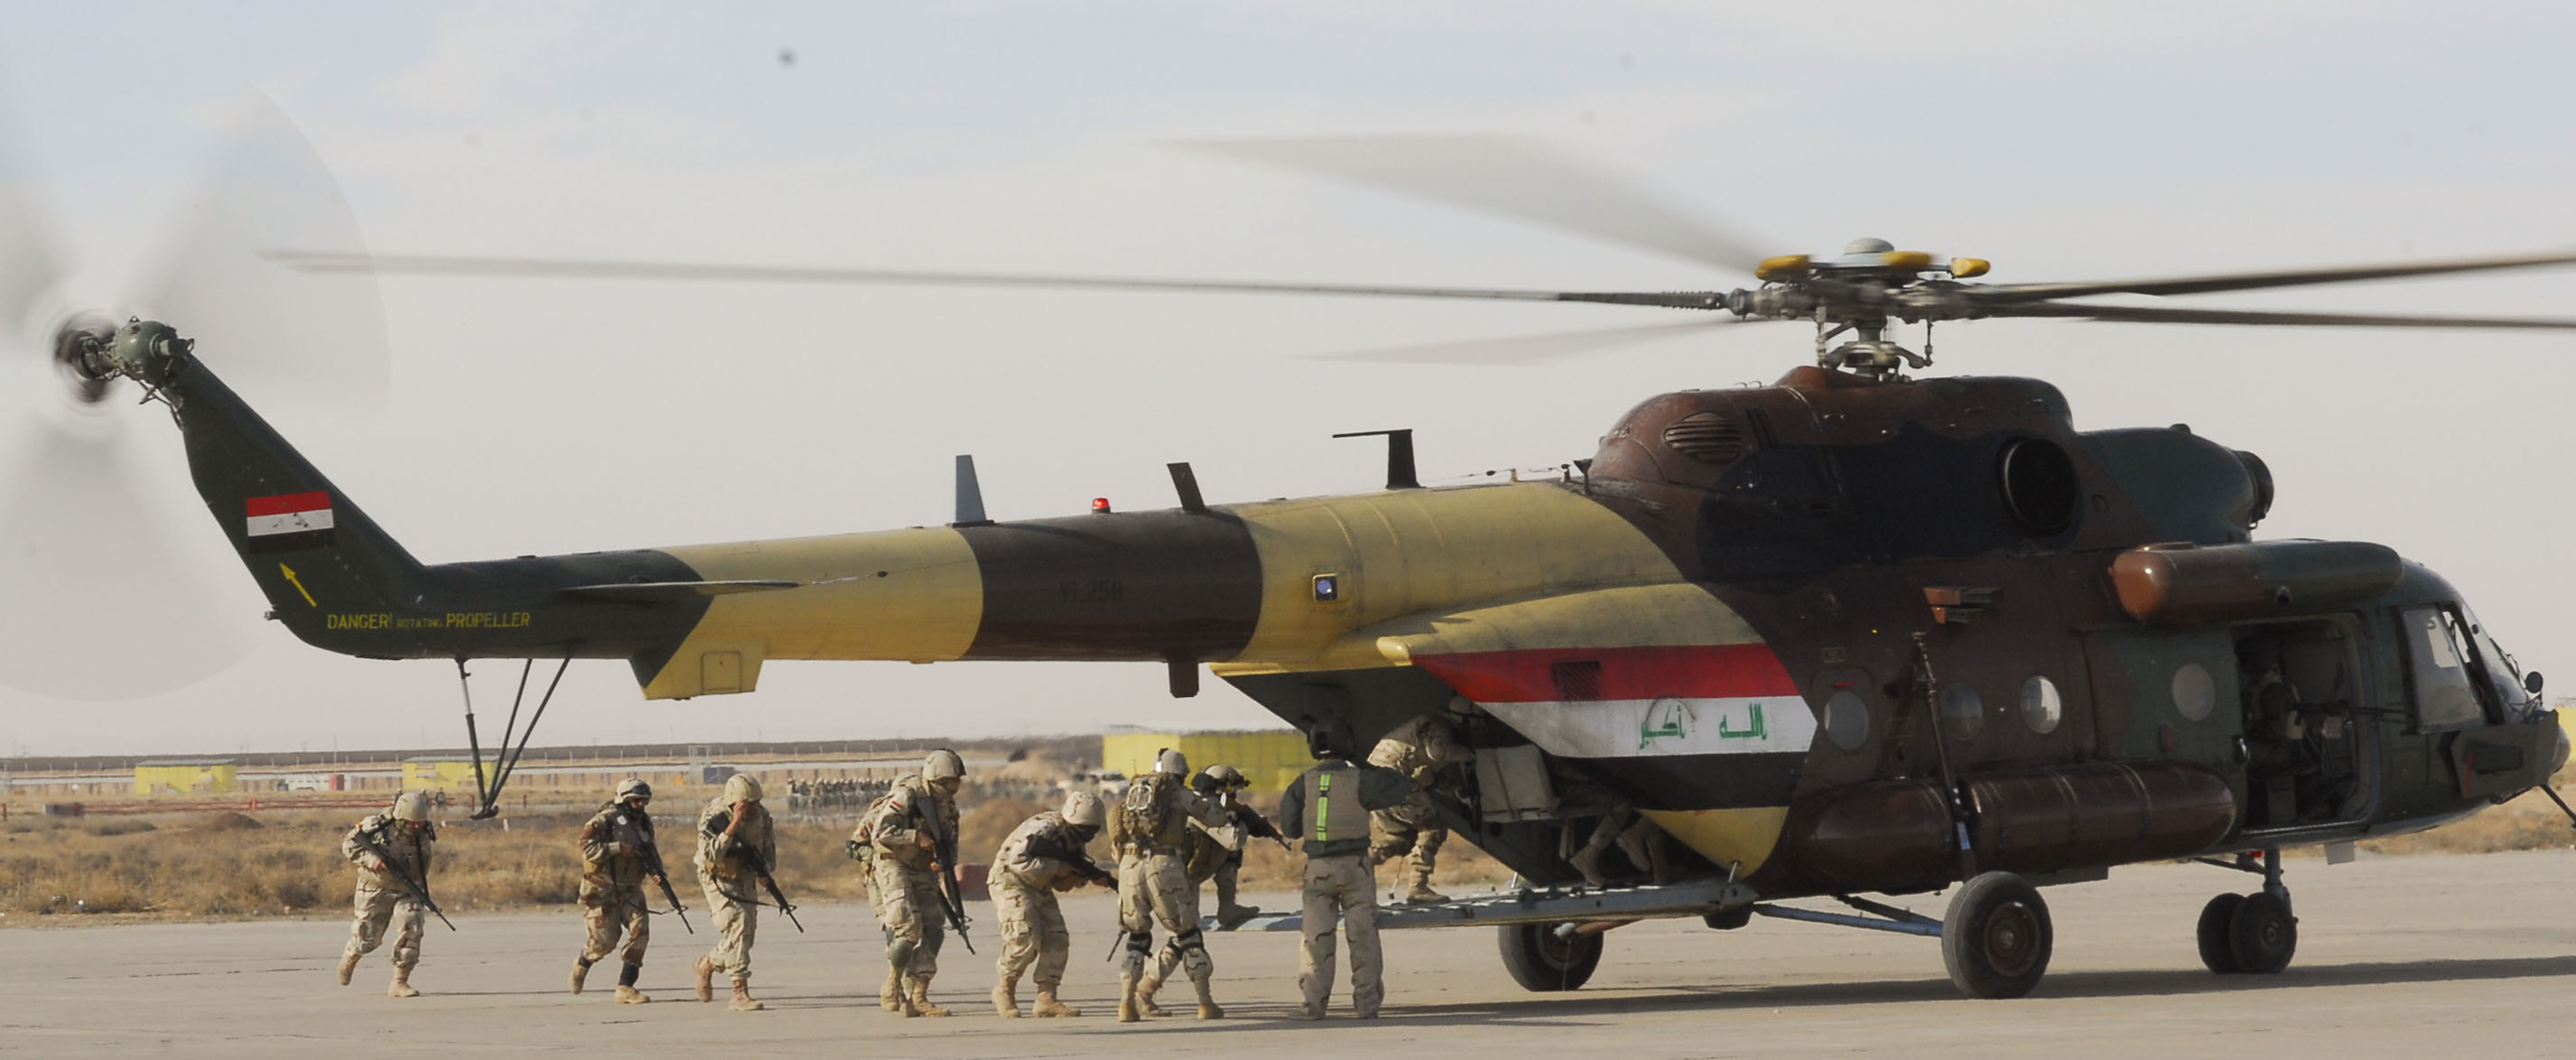 CONTINGENCY OPERATING SITE WARRIOR, Iraq – Soldiers of 12th Iraqi Army Division load an Iraqi